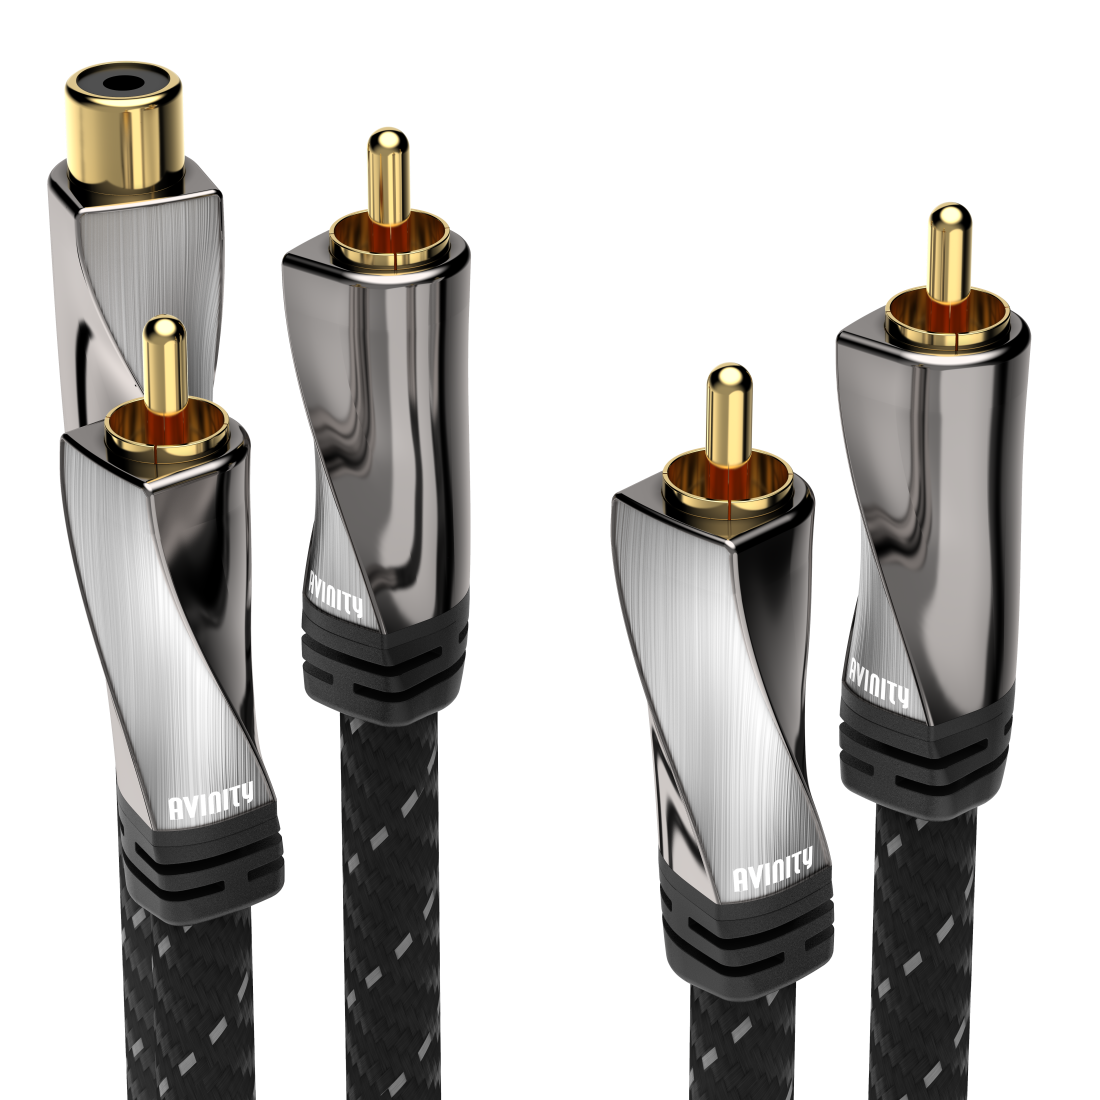 abx High-Res Image - Avinity, Subwoofer Cable + Adapter, RCA socket - 2 RCA plugs, fabric, gold-pl., 8 m